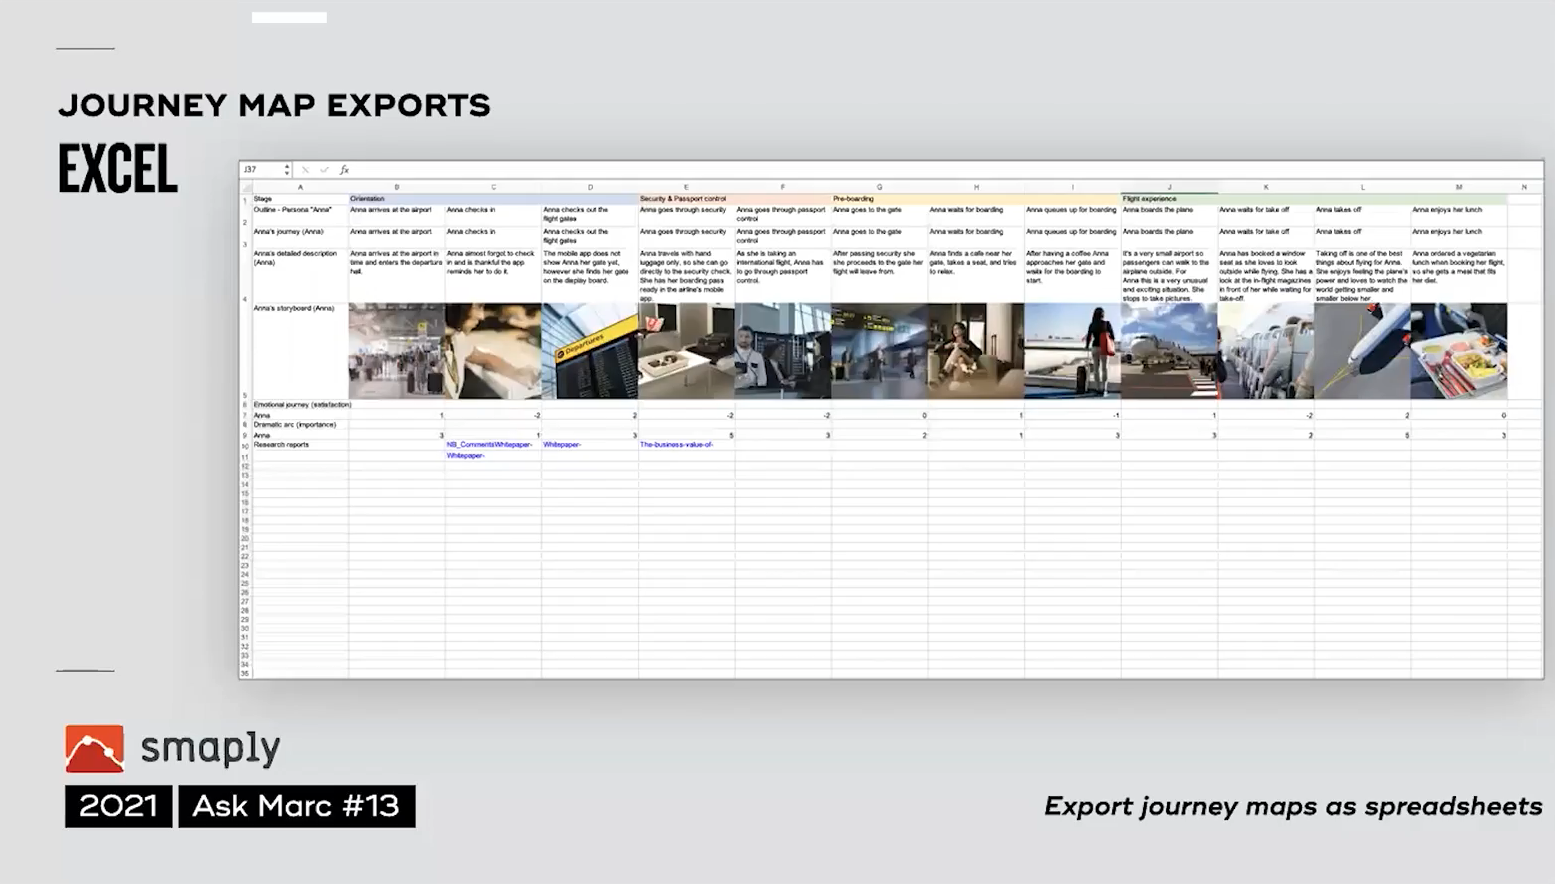 visualization of a excel as an export format for journey maps in smaply